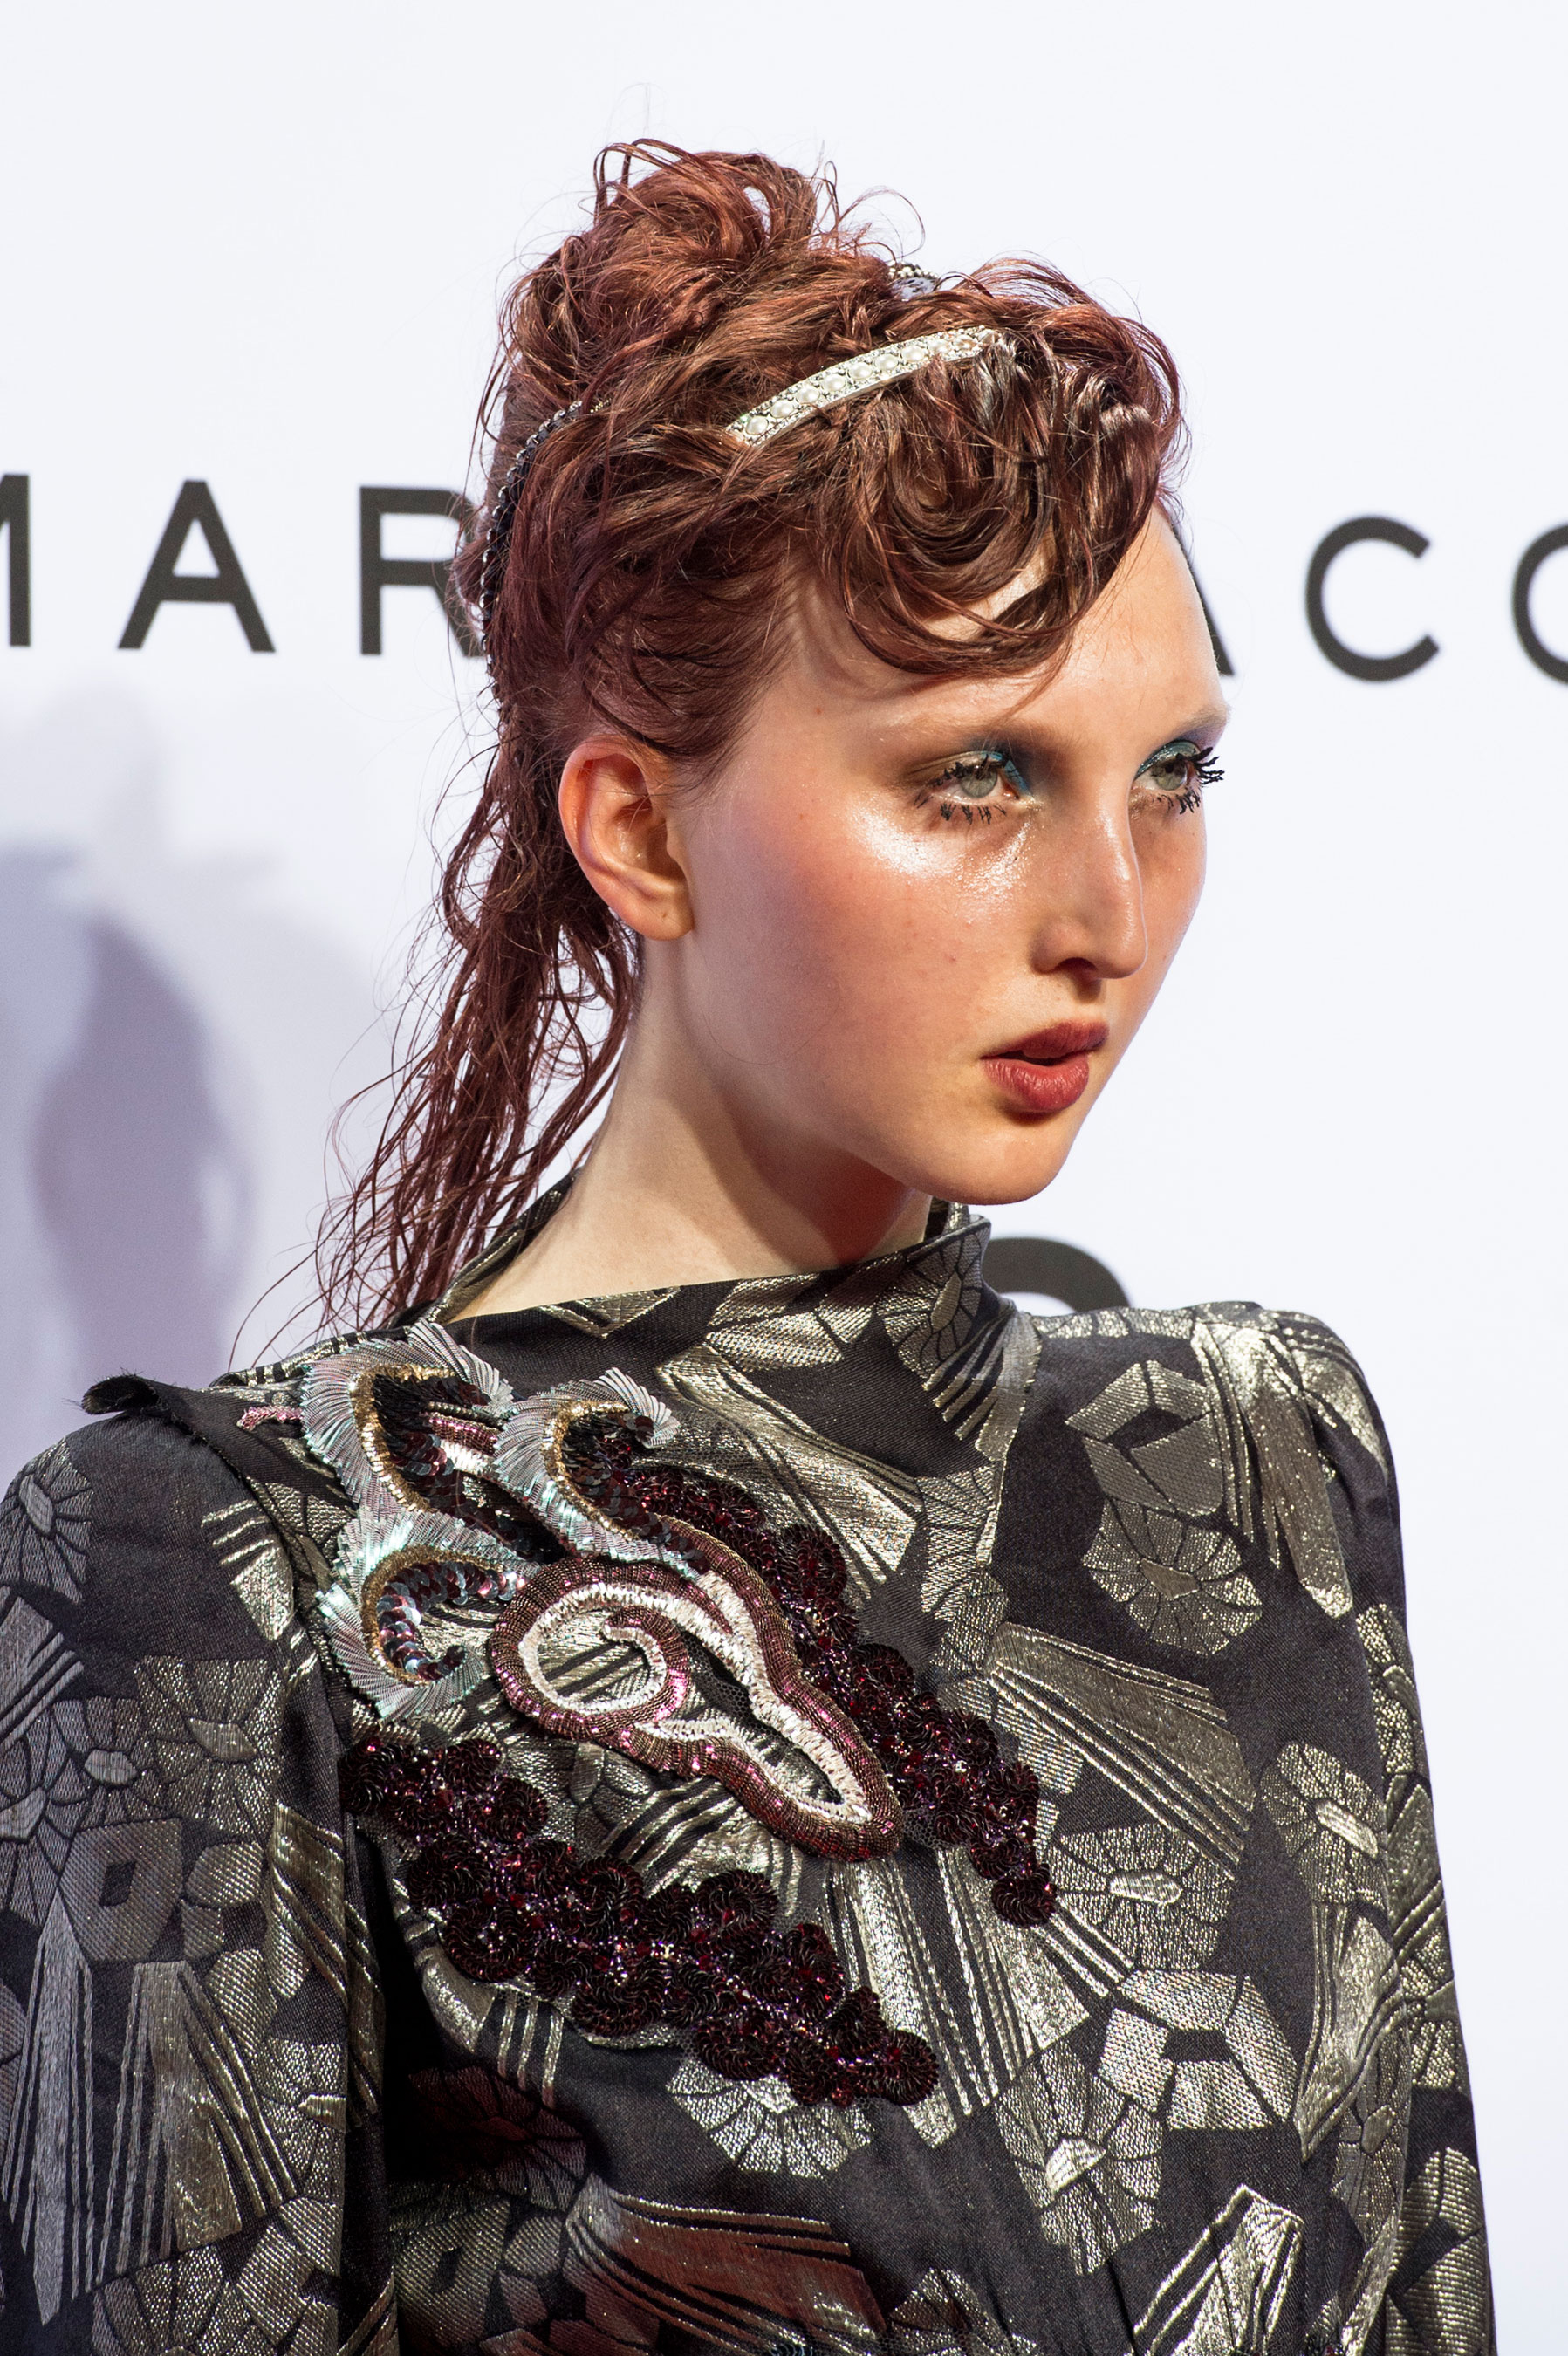 marc-jacobs-spring-2016-runway-beauty-fashion-show-the-impression-02